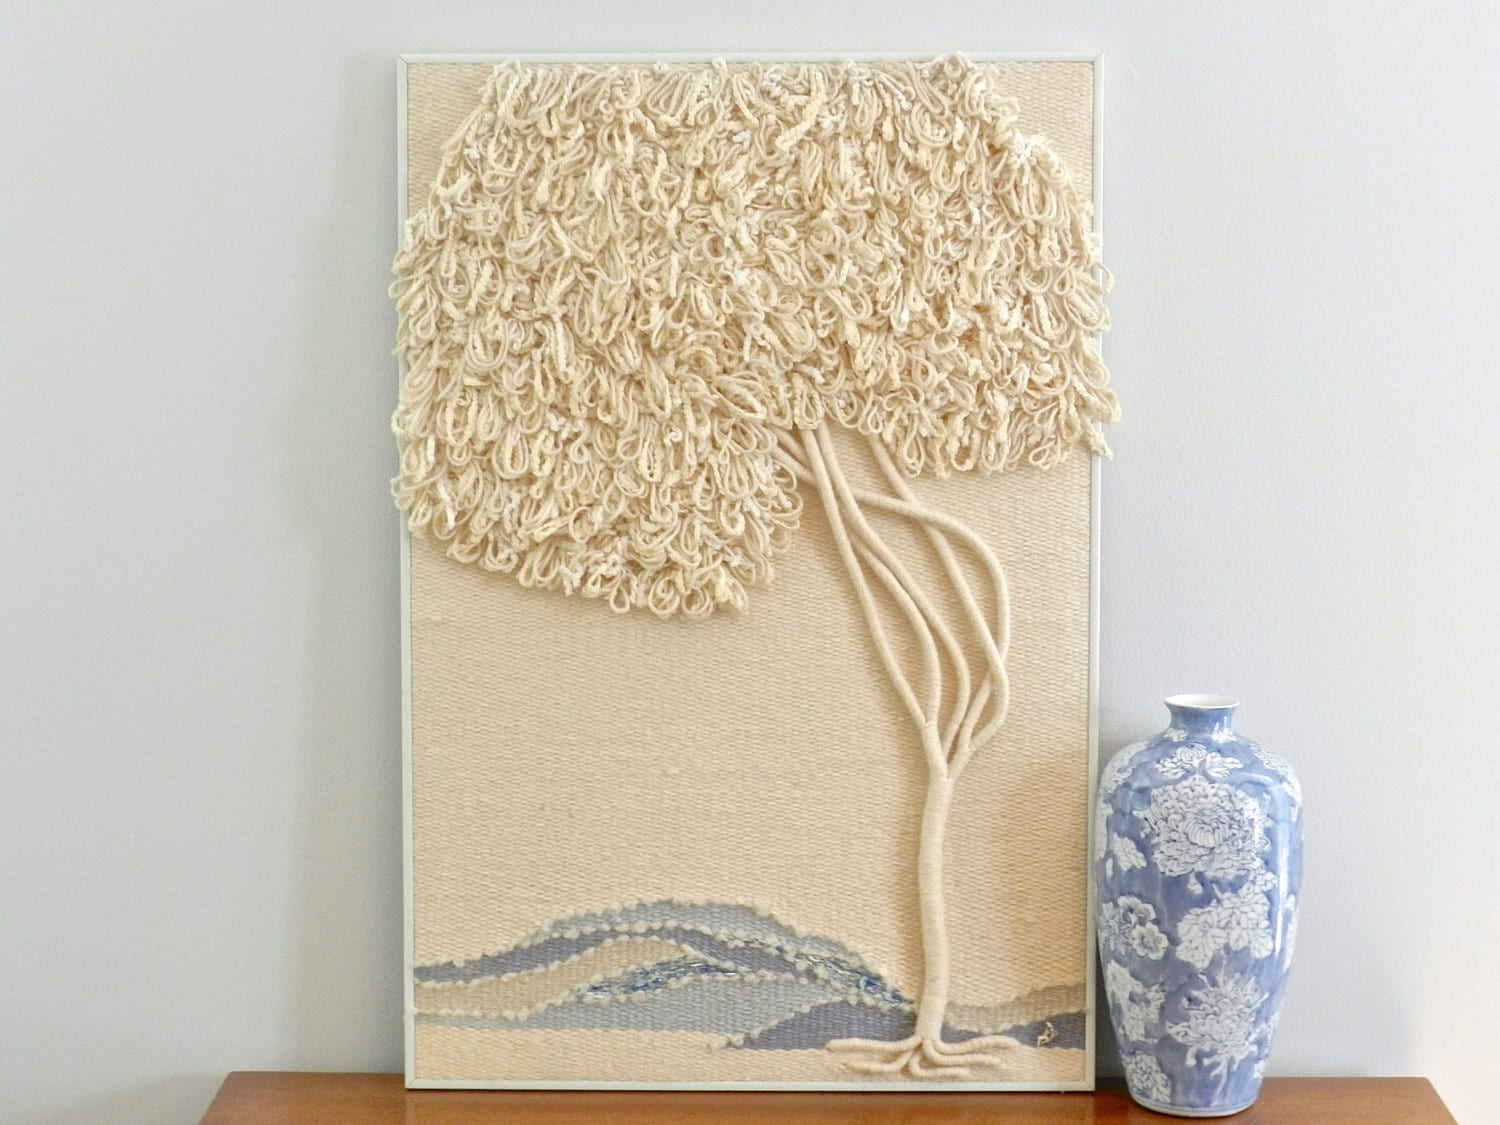 Woven Leaves Wall Decor : Vintage woven textile wall decor wool tapestry weaving art